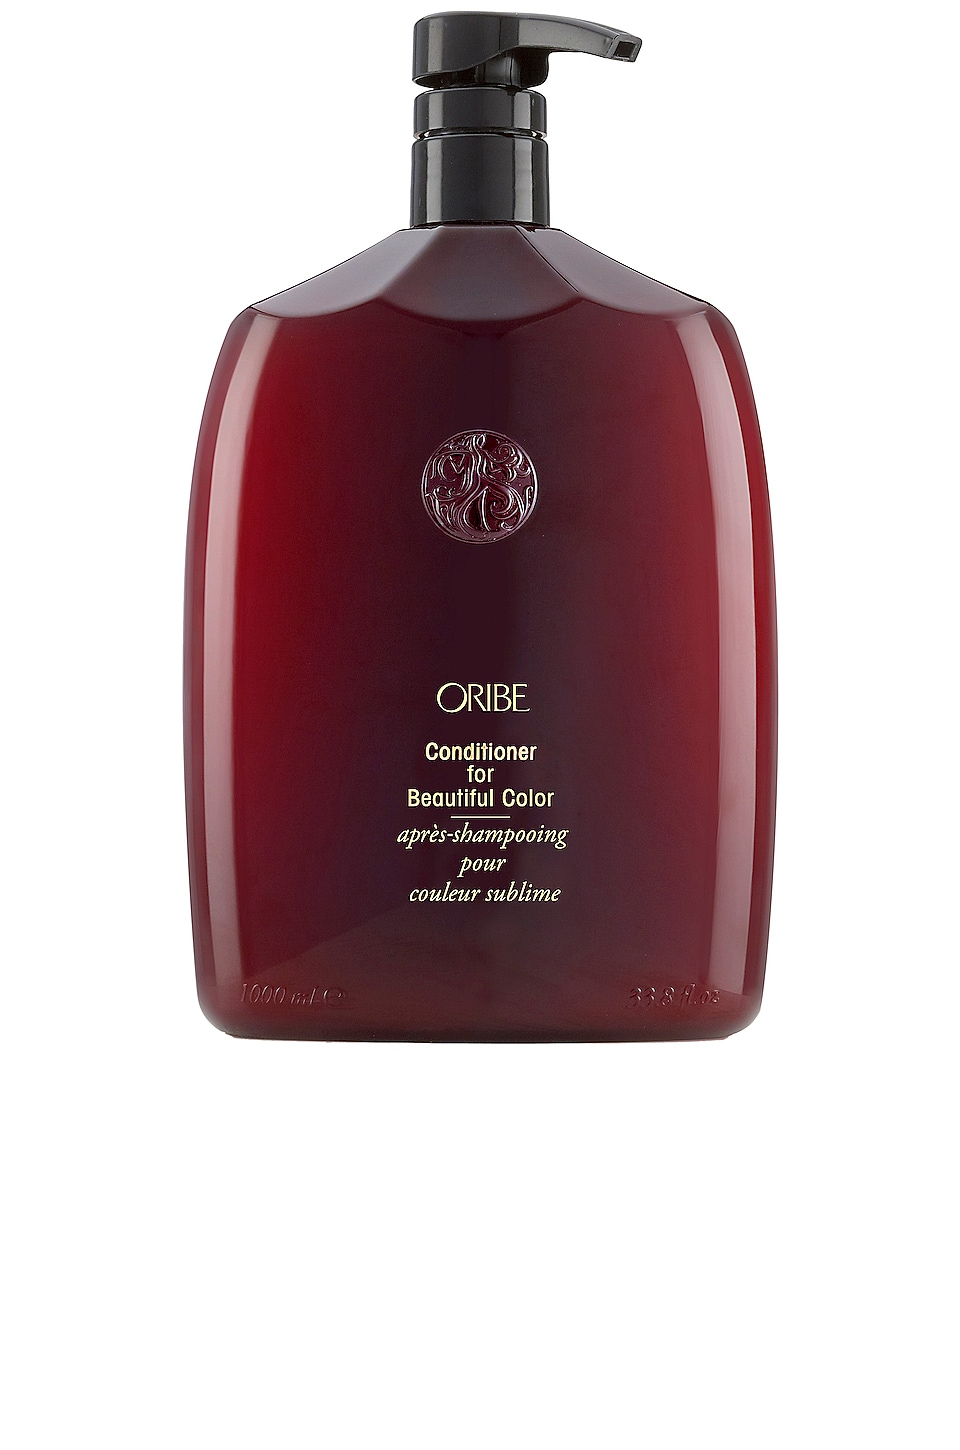 Oribe Conditioner for Beautiful Color Liter